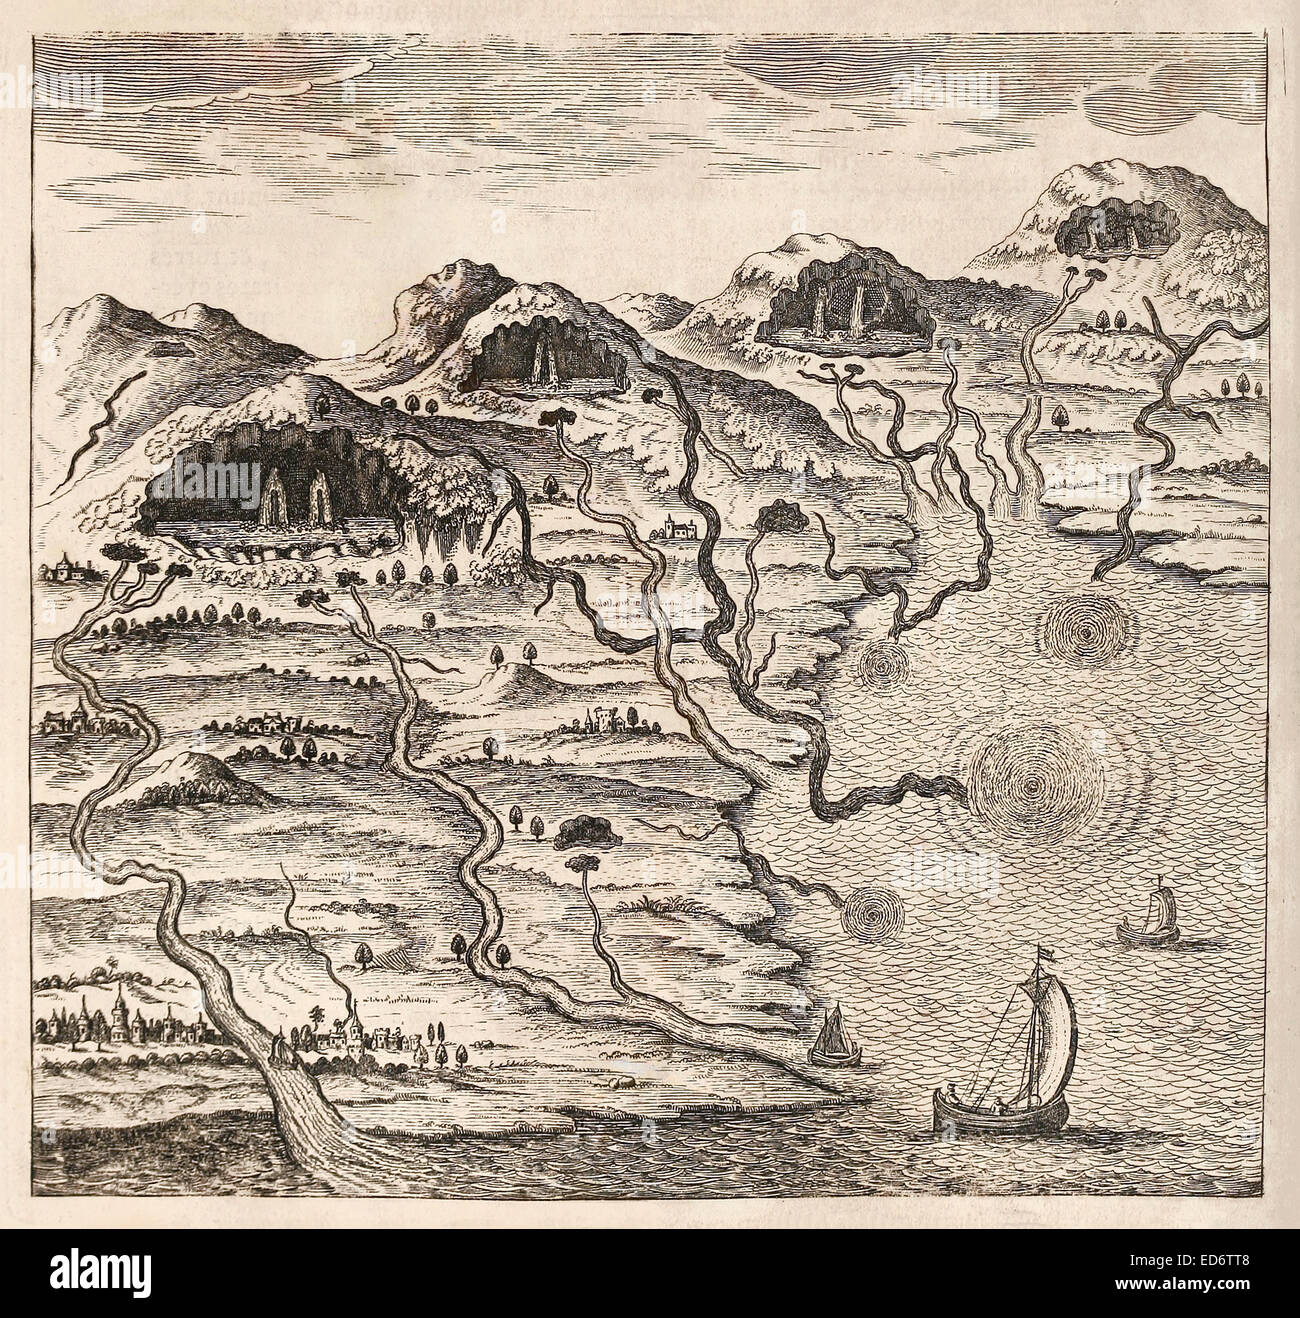 17th century illustration of the circulation of water from the sea via whirlpools to caverns and then through rivers - Stock Image